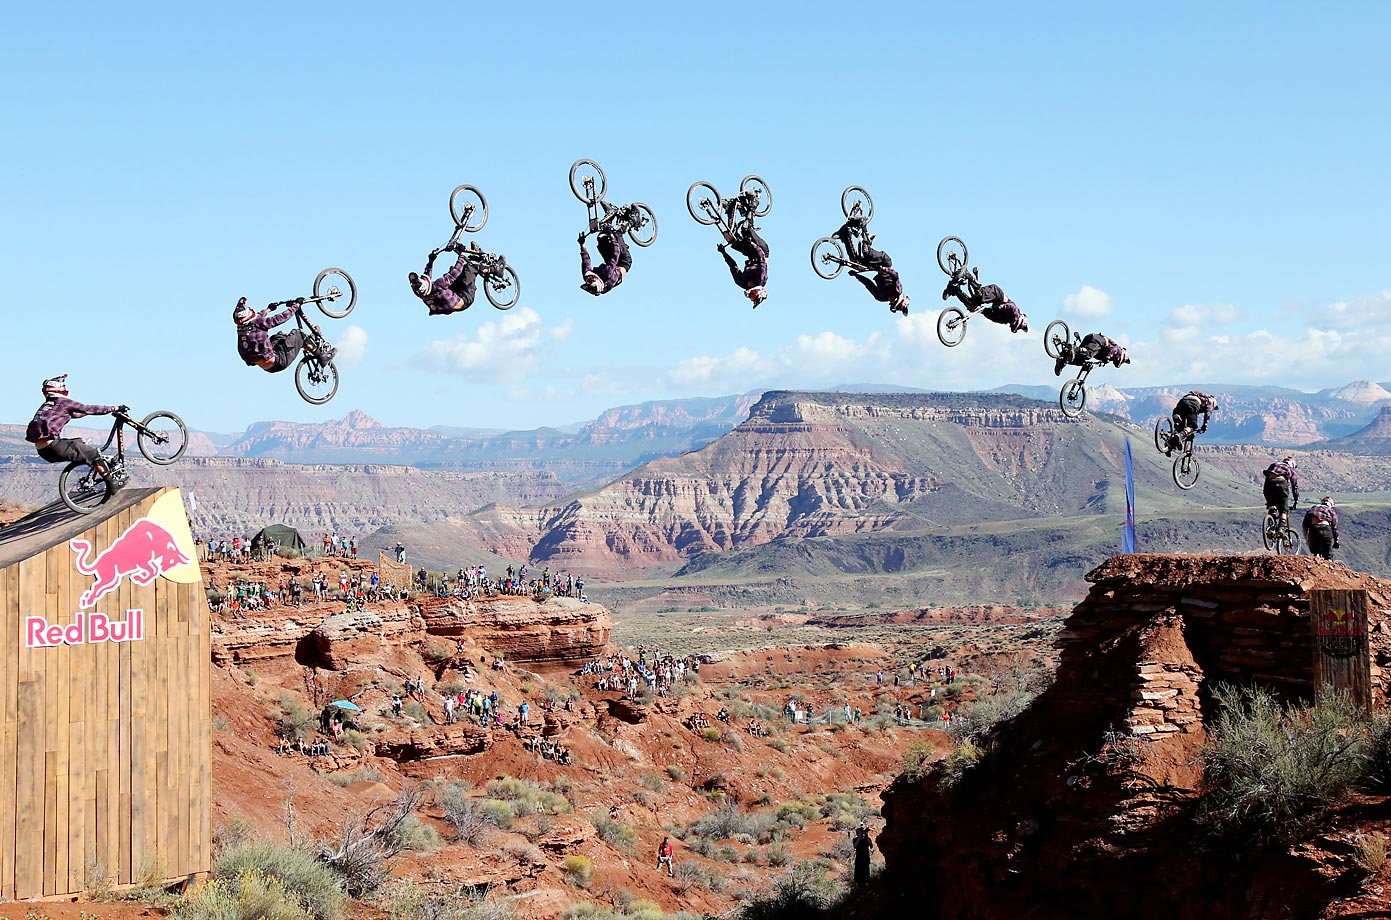 Jeff Herbertson backflips over the canyon gap during the Red Bull Rampage finals.